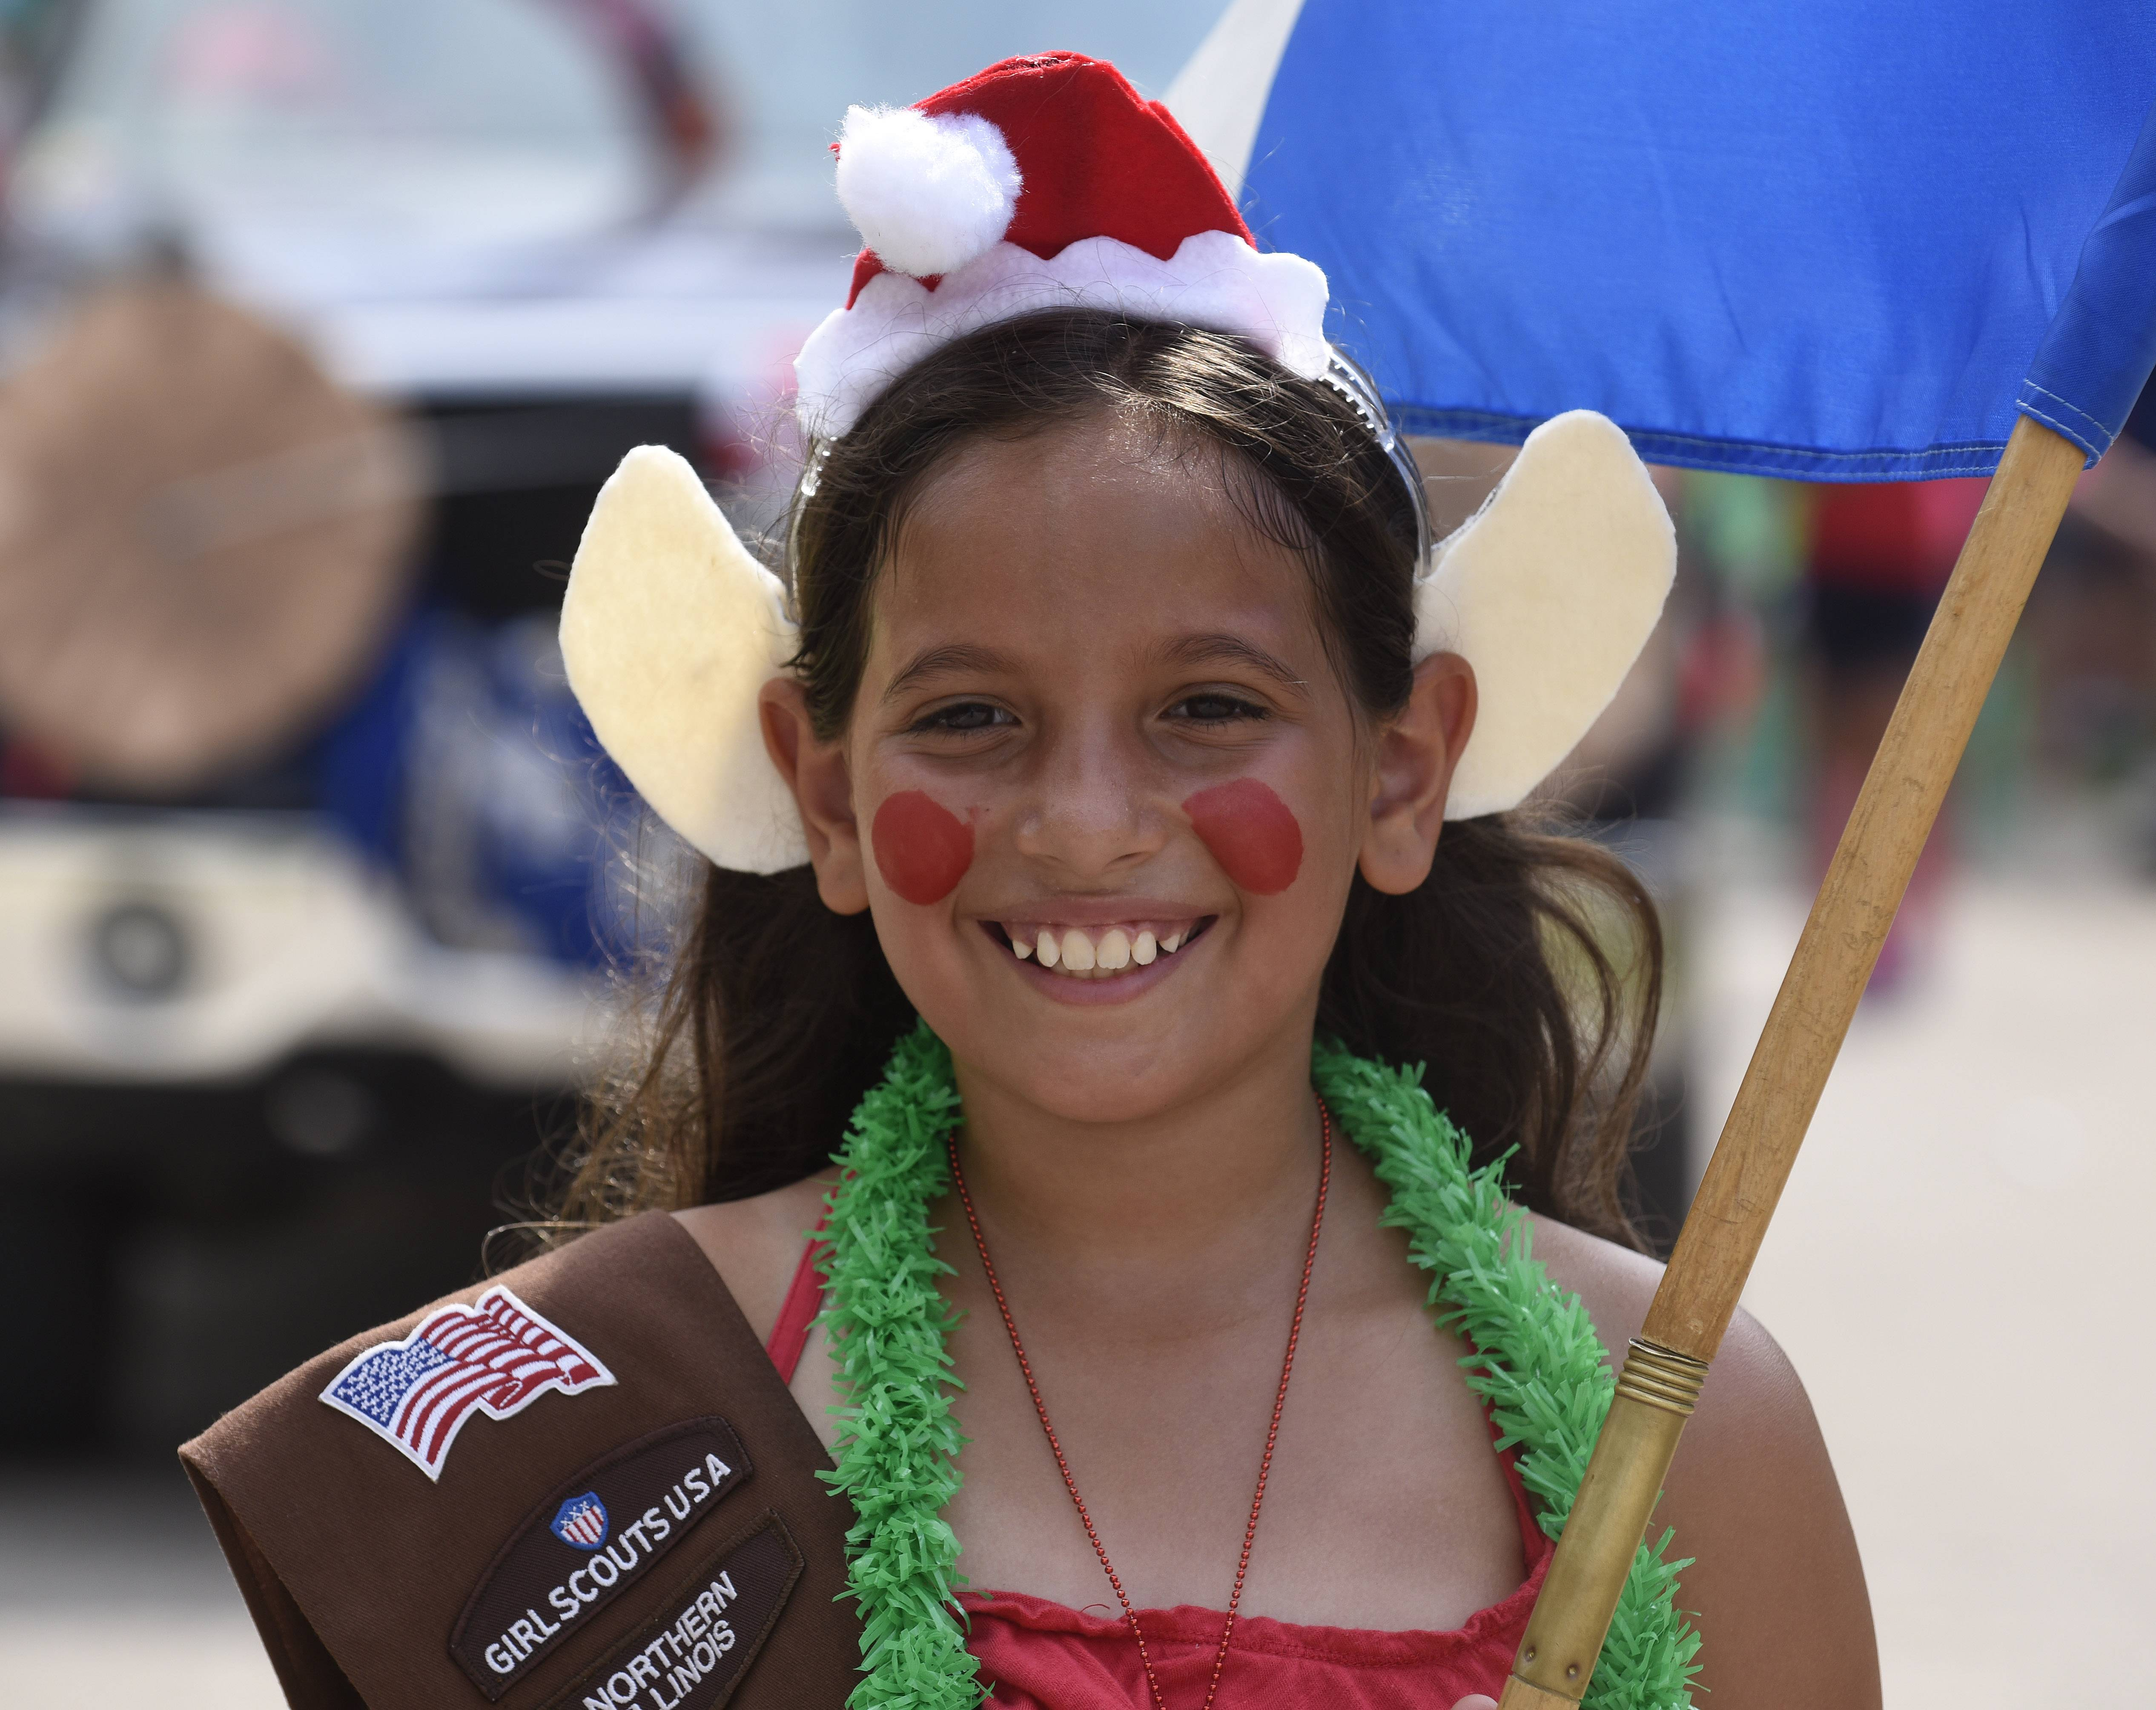 Francesca Bove, 9, of Hanover Park dons her Santa hat and elf ears as she and the rest of her fellow Girl Scouts march in the Streamwood Summer Celebration parade on Saturday.